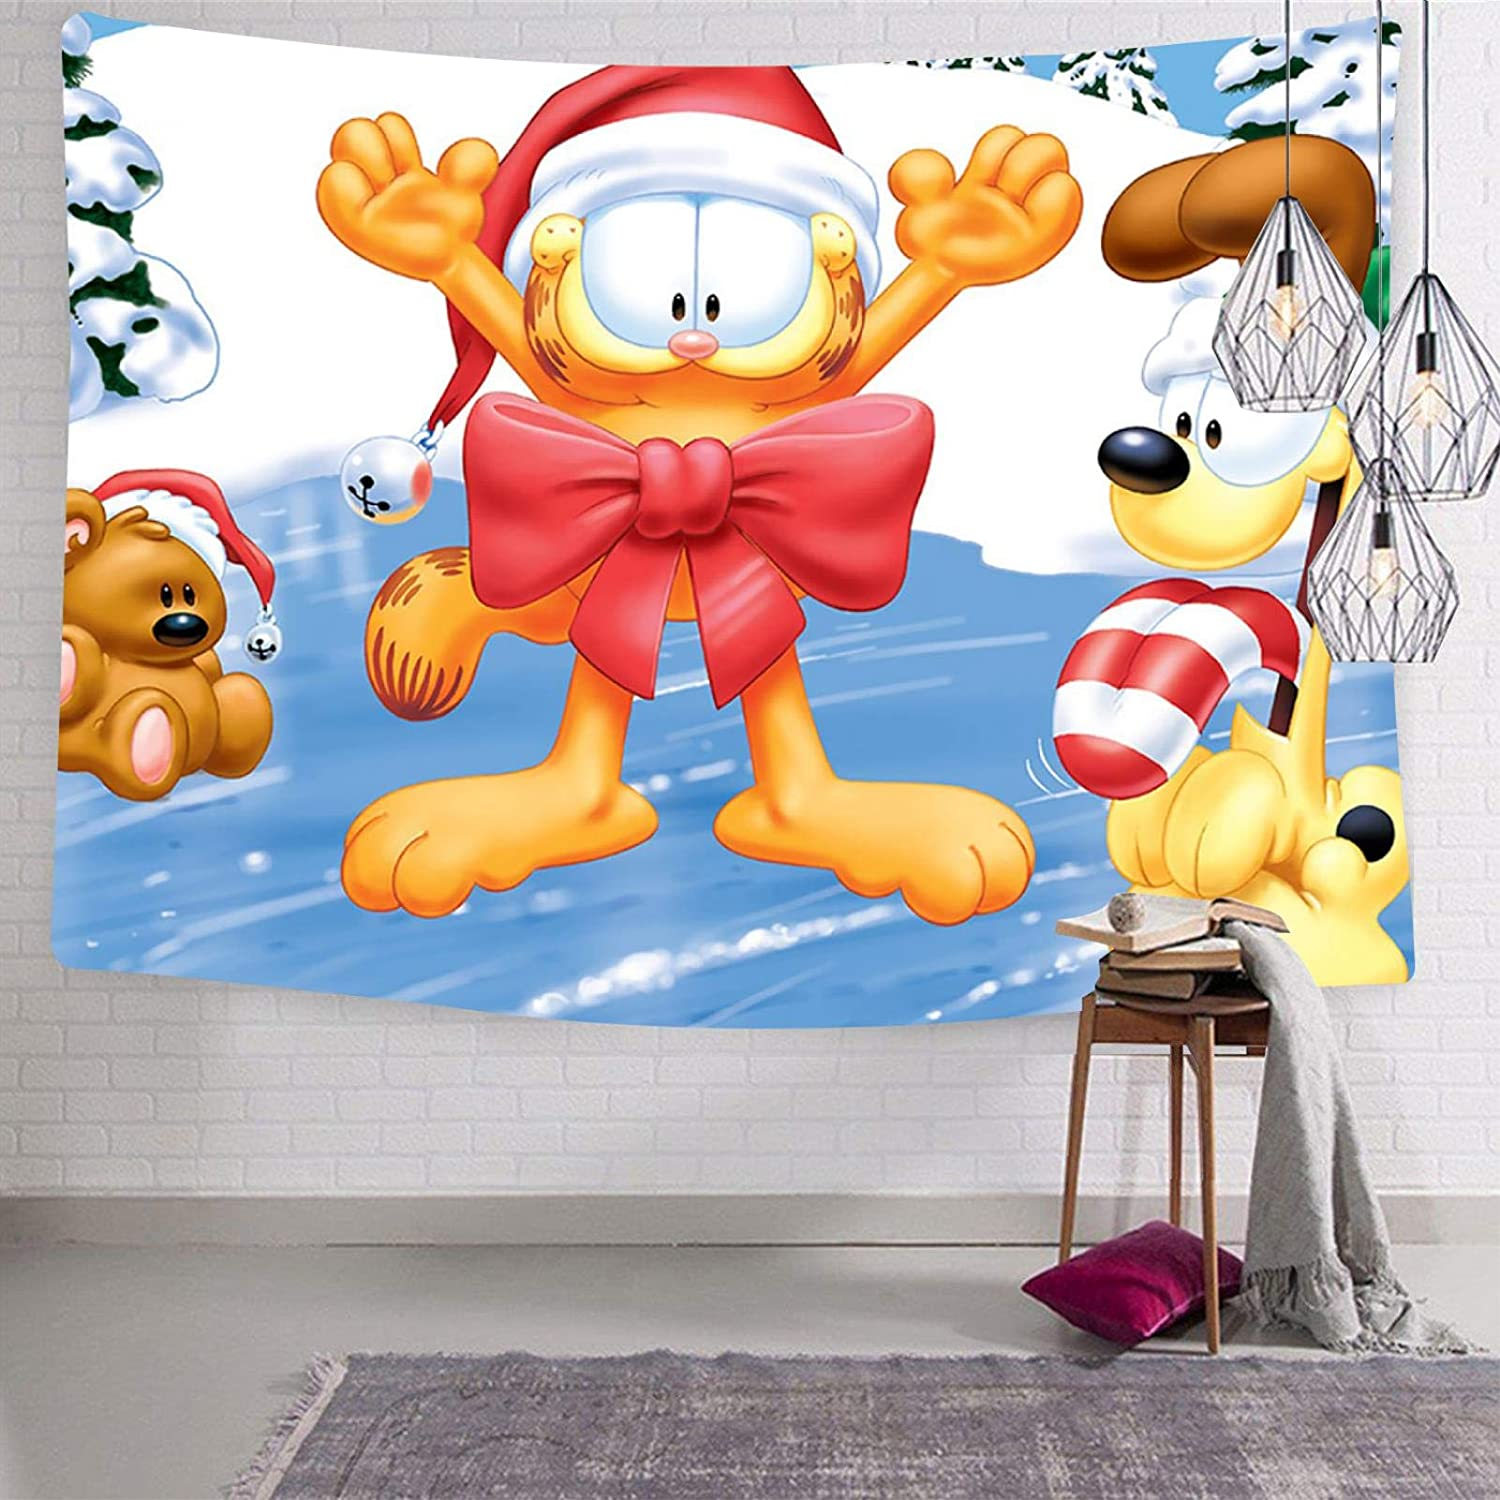 VIPODER Tapestry Wall Hanging Decor Blanket Garfield and Odie Christmas Decorations for Living Room Bedroom Home Decor Tapestries 70.9 x 92.5 Inch